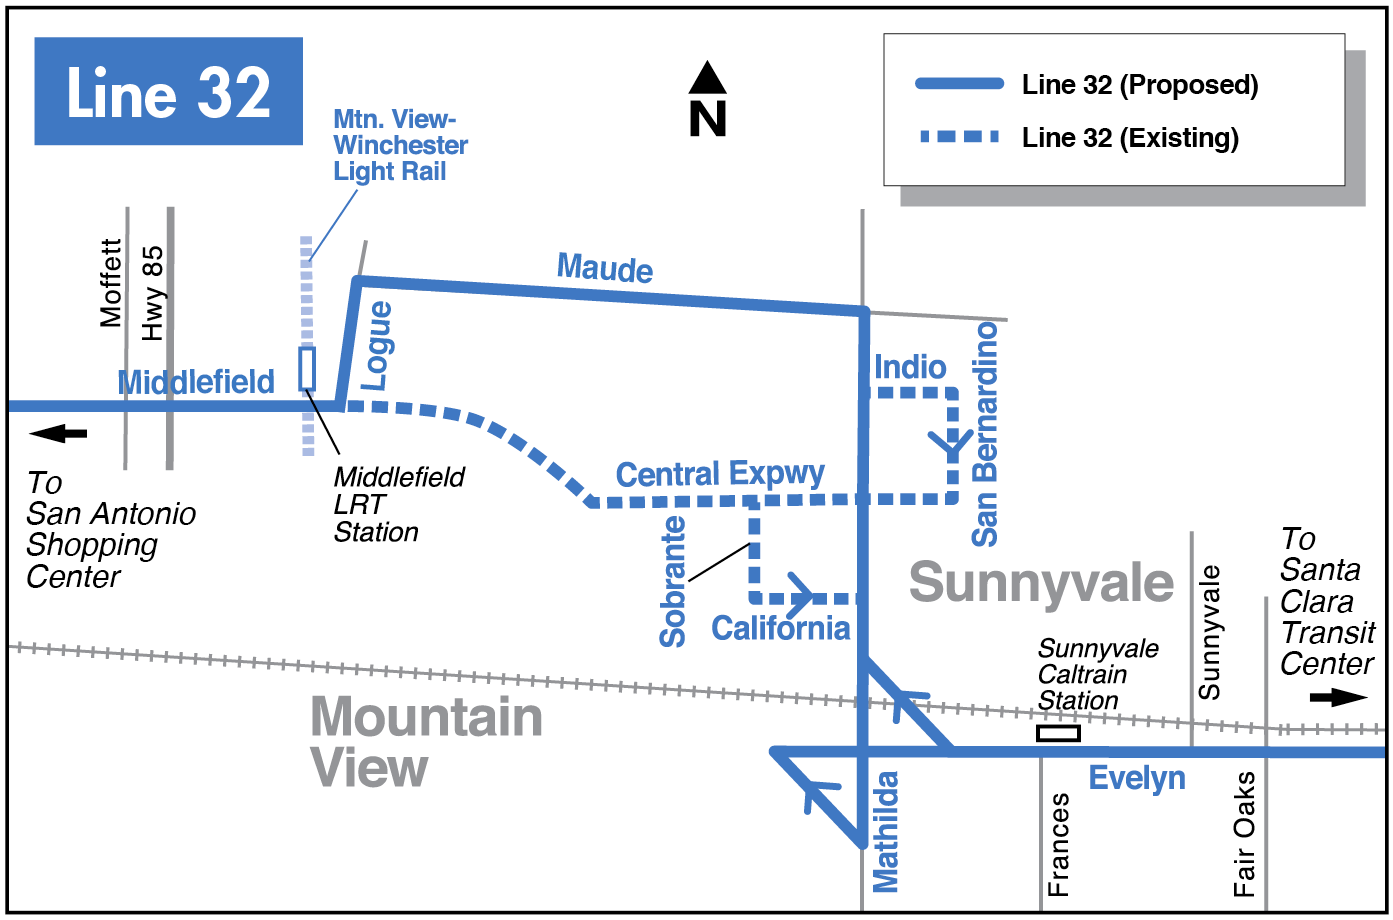 Proposed Line 32 map for 2016-2017 Transit Service Plan